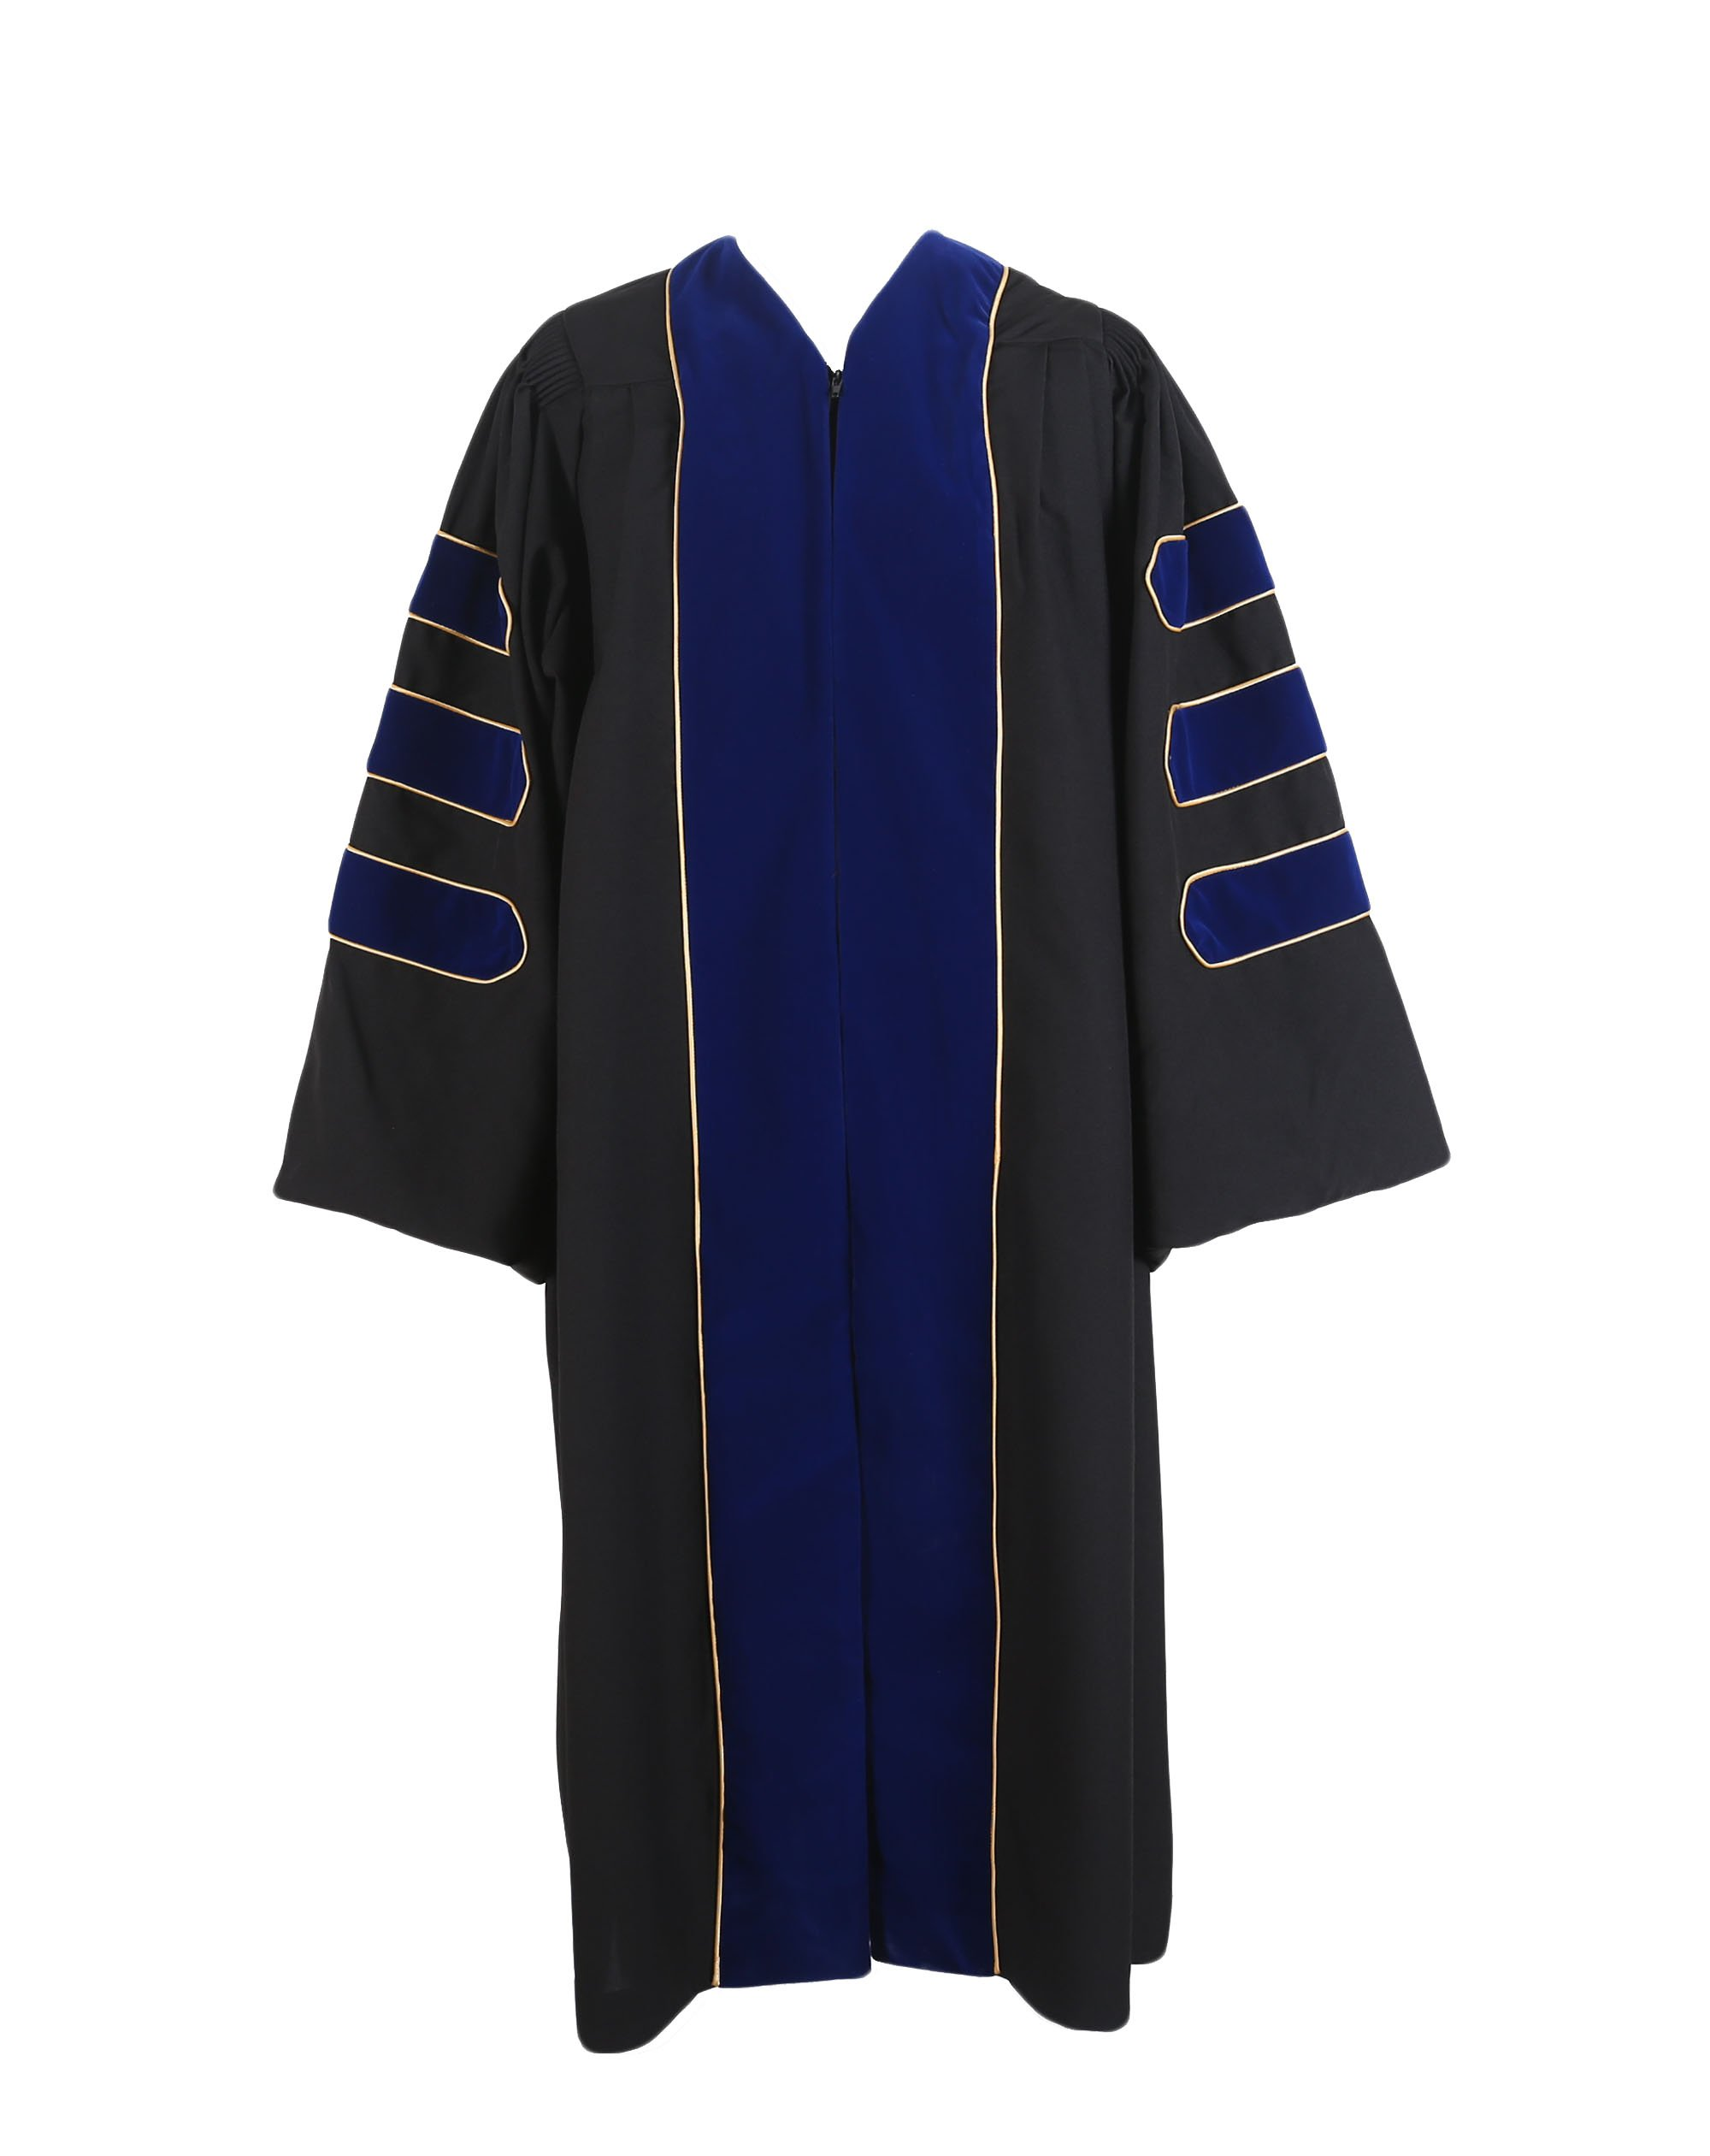 GraduationService Deluxe Doctoral Graduation Gown with Gold Piping Unisex by GraduationService